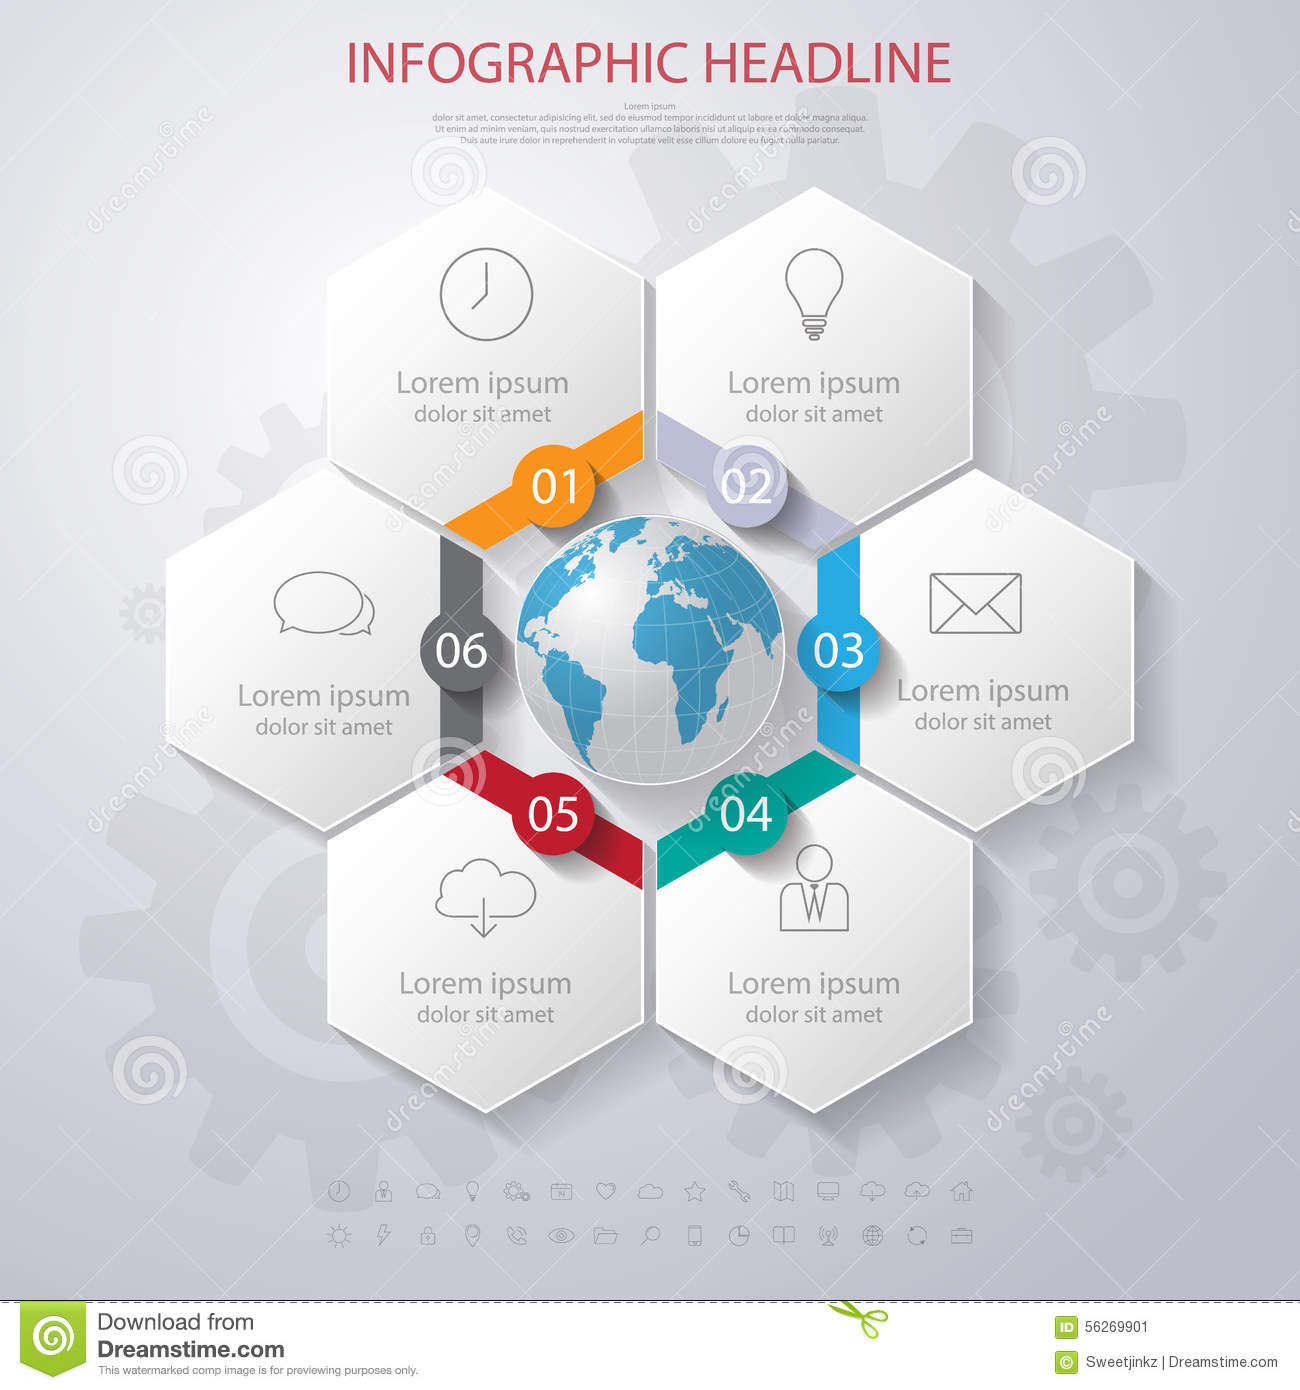 Abstract 3d digital illustration infographic with world mapn abstract 3d digital illustration infographic with world mapn gumiabroncs Image collections